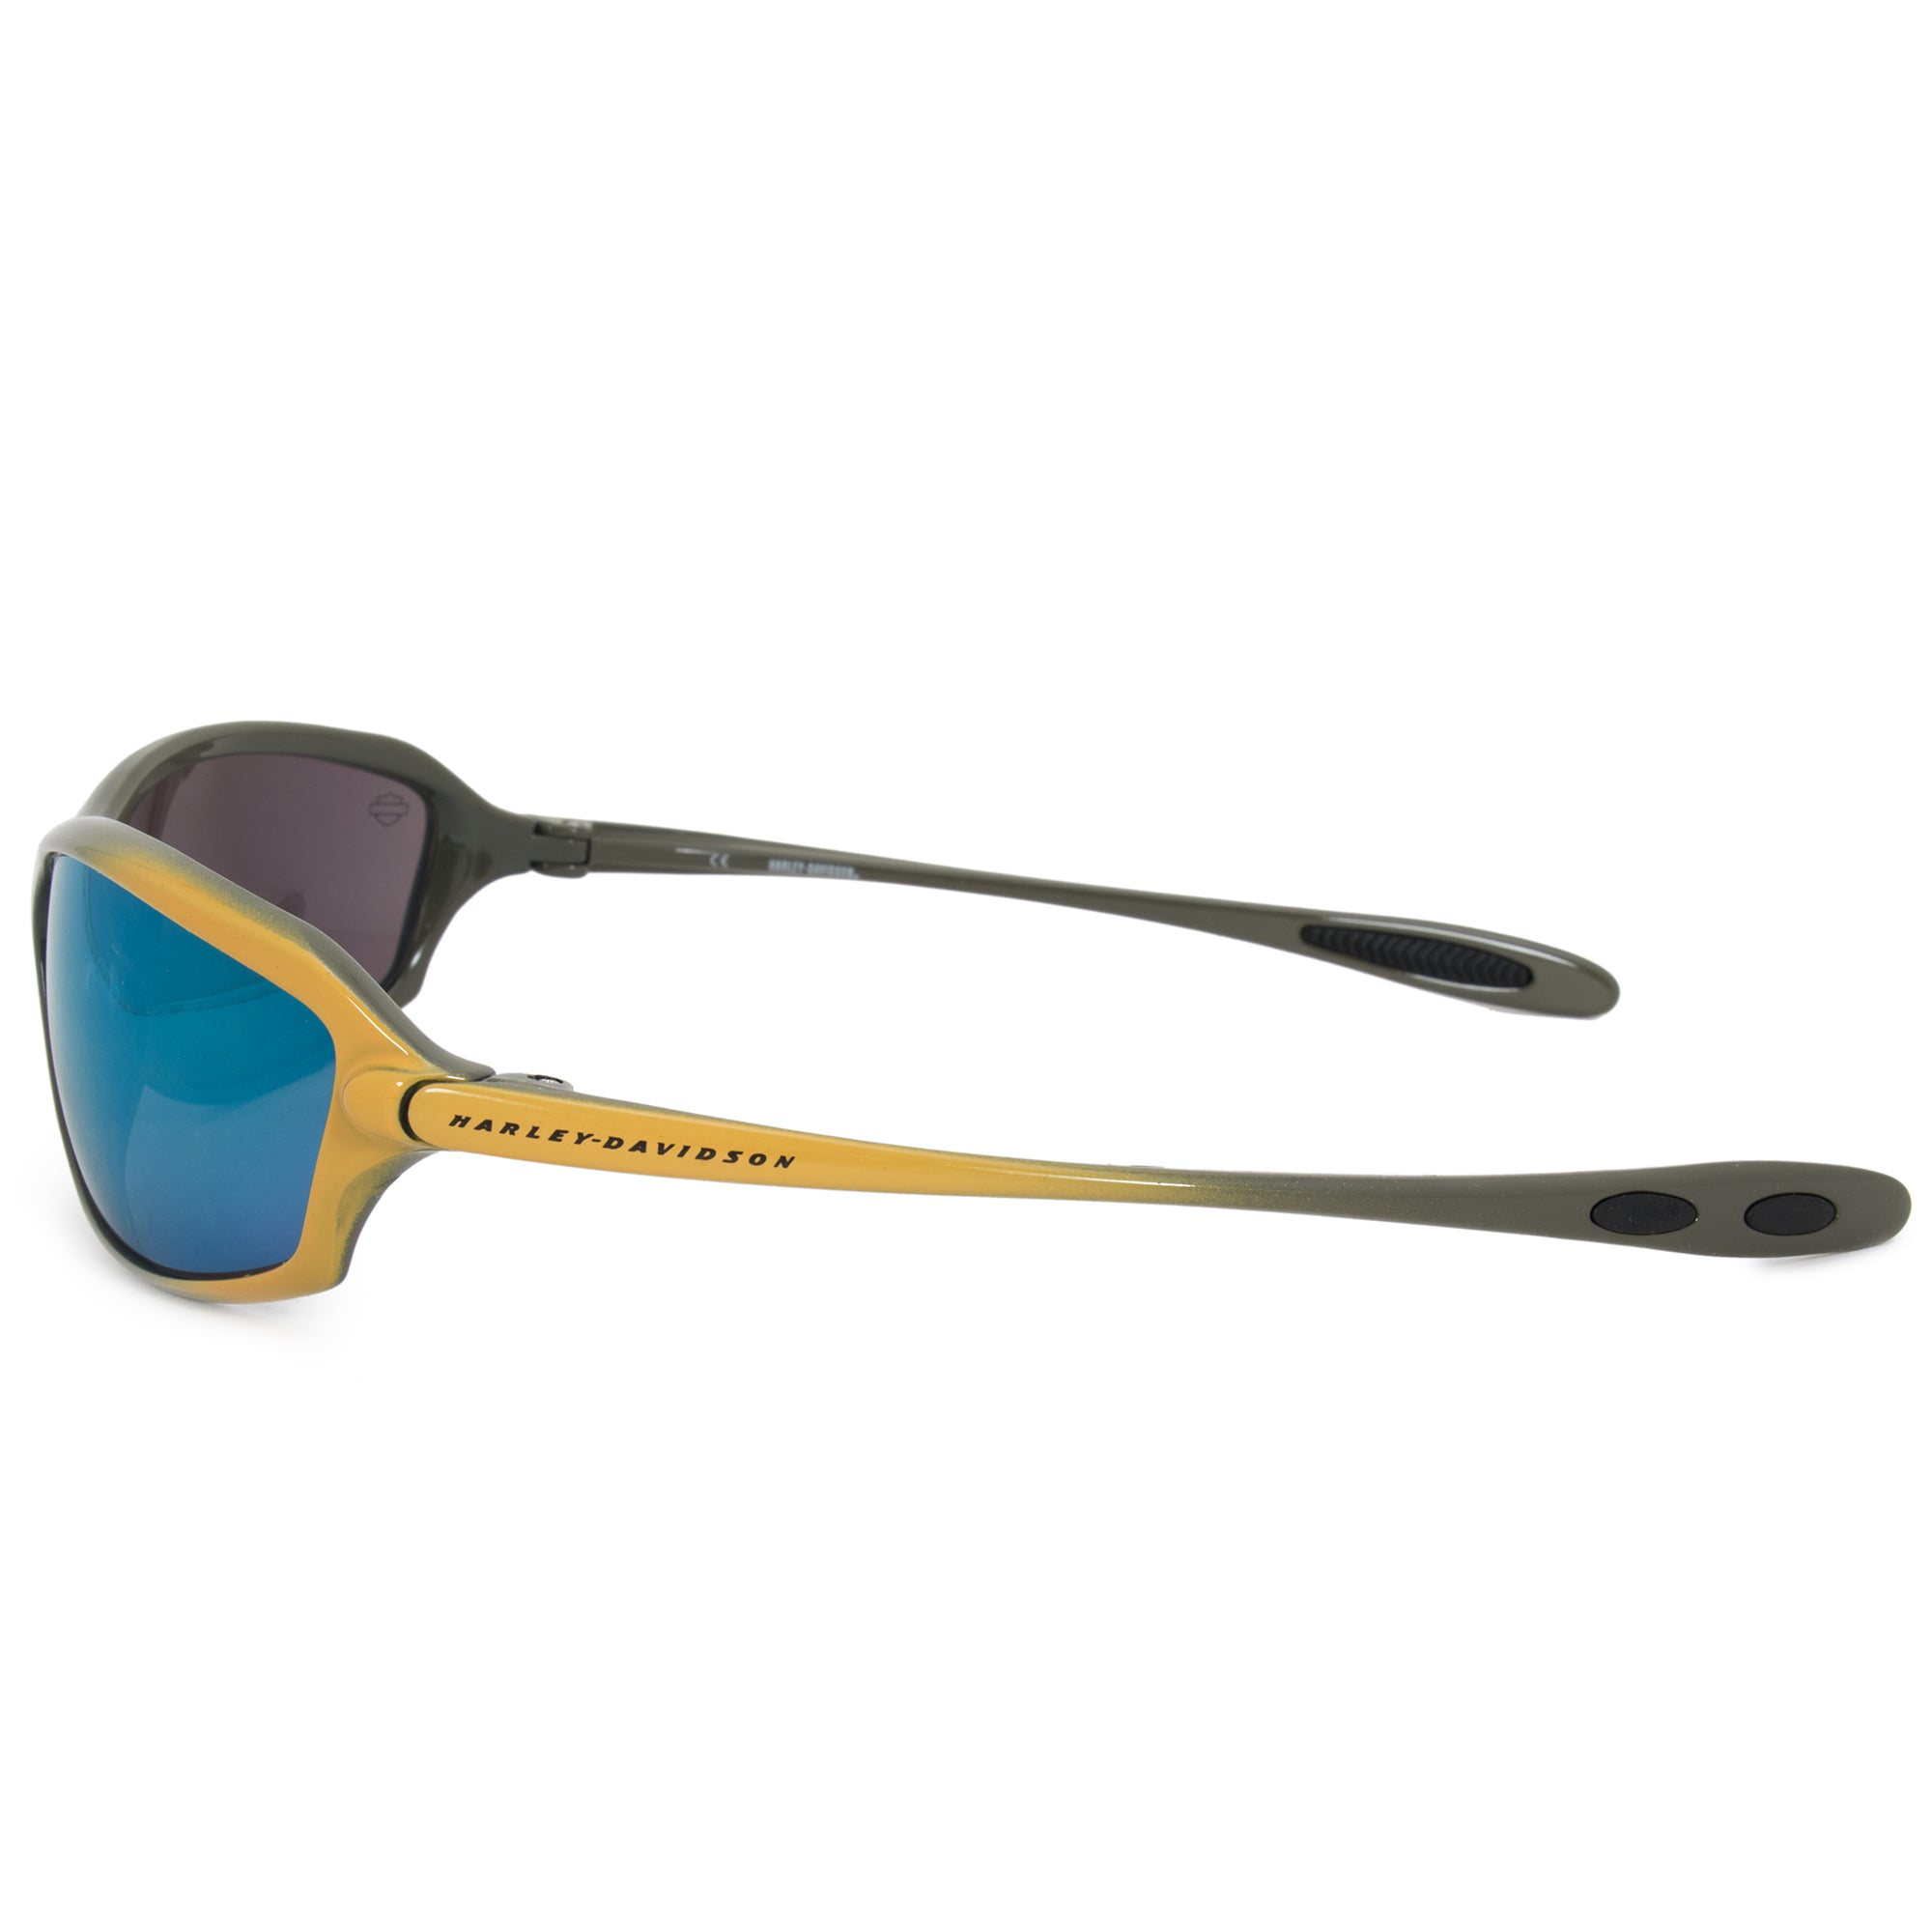 Harley Davidson Rectangle Sunglasses HDS0614 GRY 3F 66